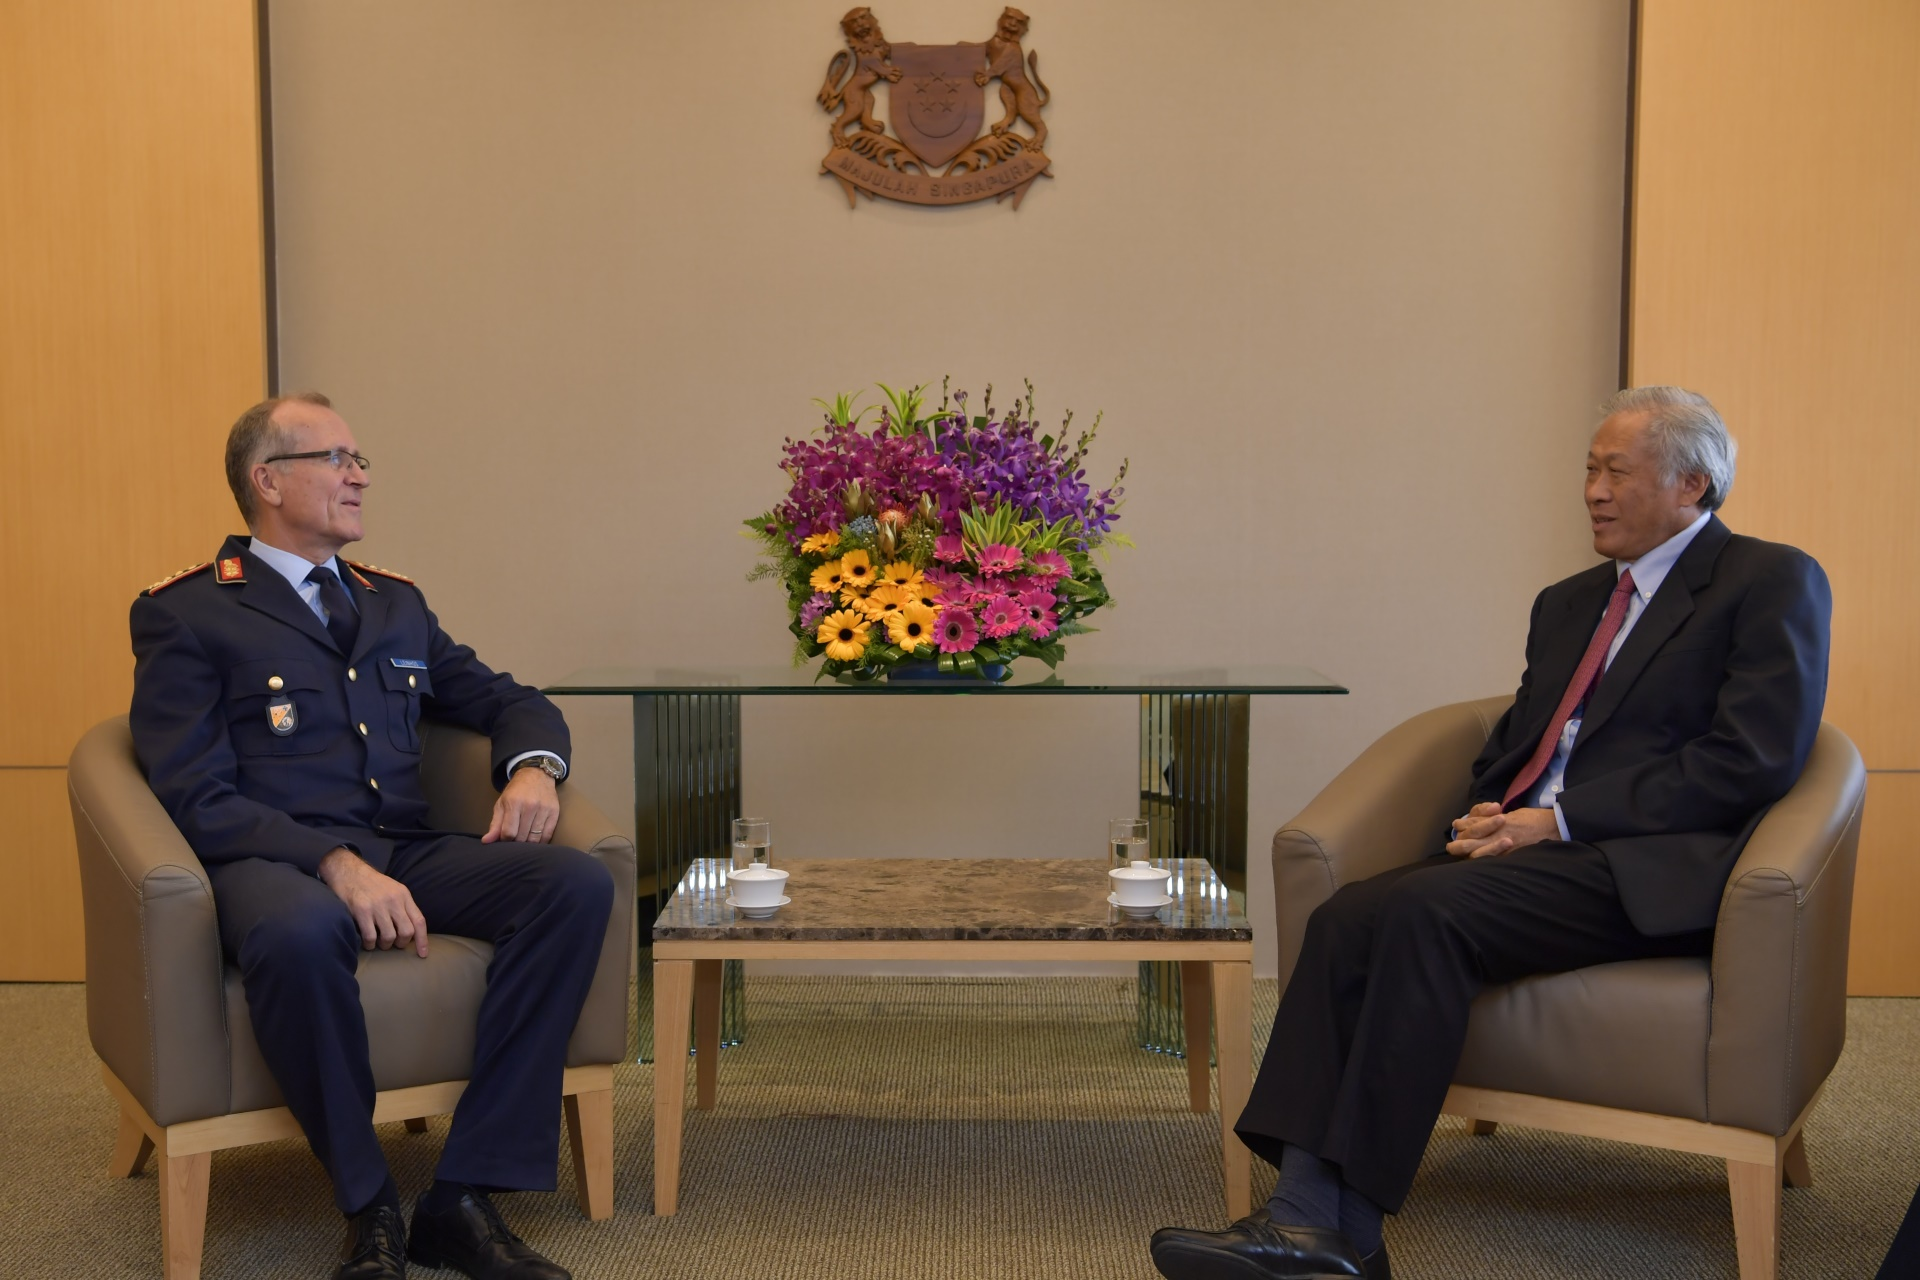 Chief of German Cyber & Information Domain Service Lieutenant-General Ludwig Leinhos (left) calling on Minister for Defence Dr Ng Eng Hen (right) at the Ministry of Defence this morning.